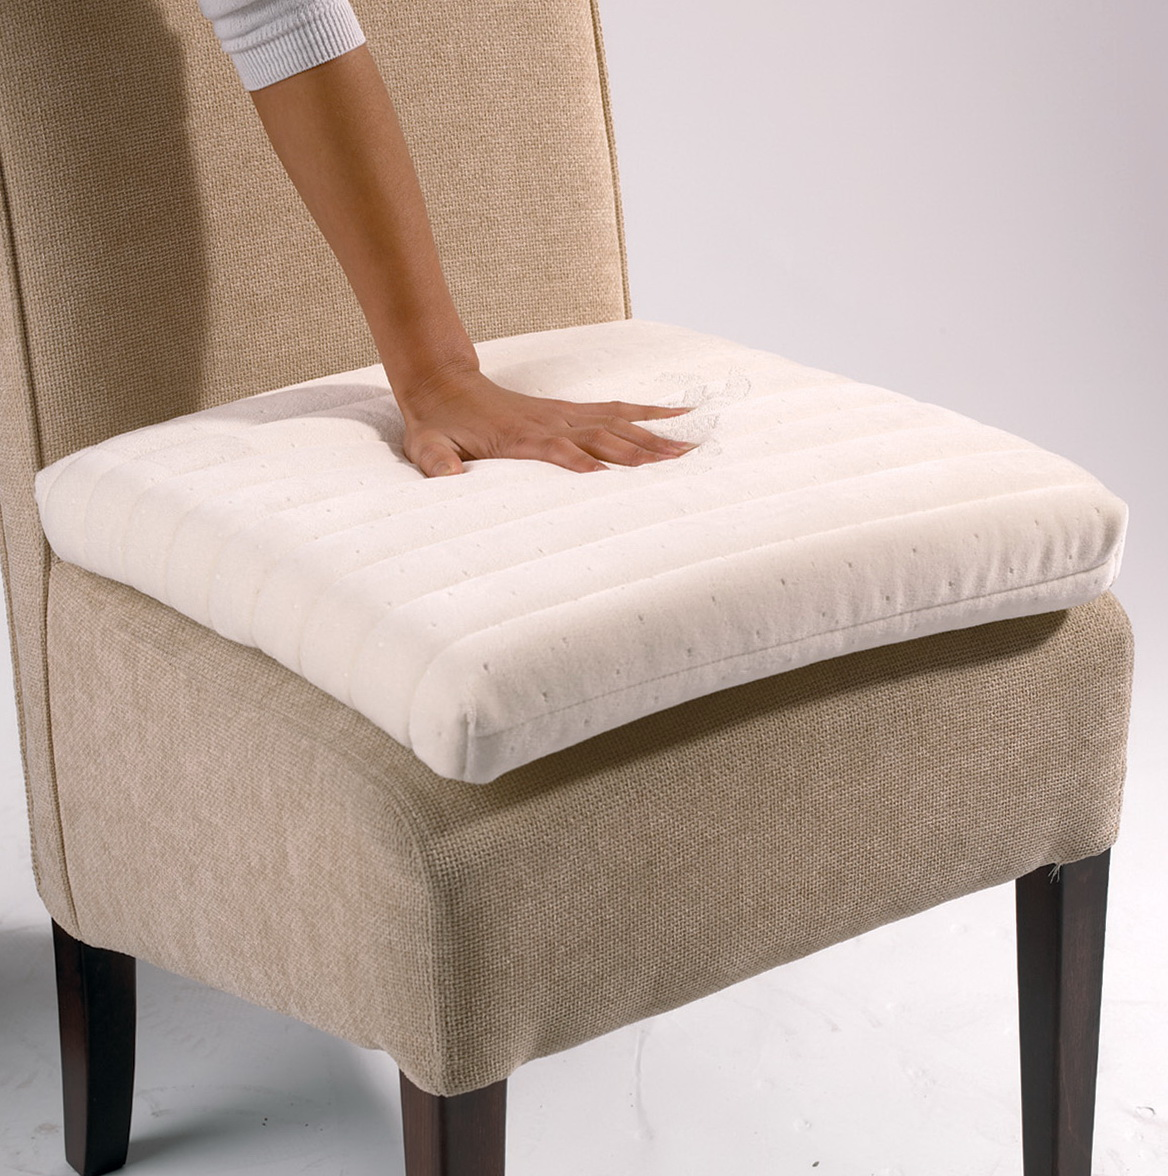 Foam Chair Cushions Memory Foam Chair Cushion Home Design Ideas